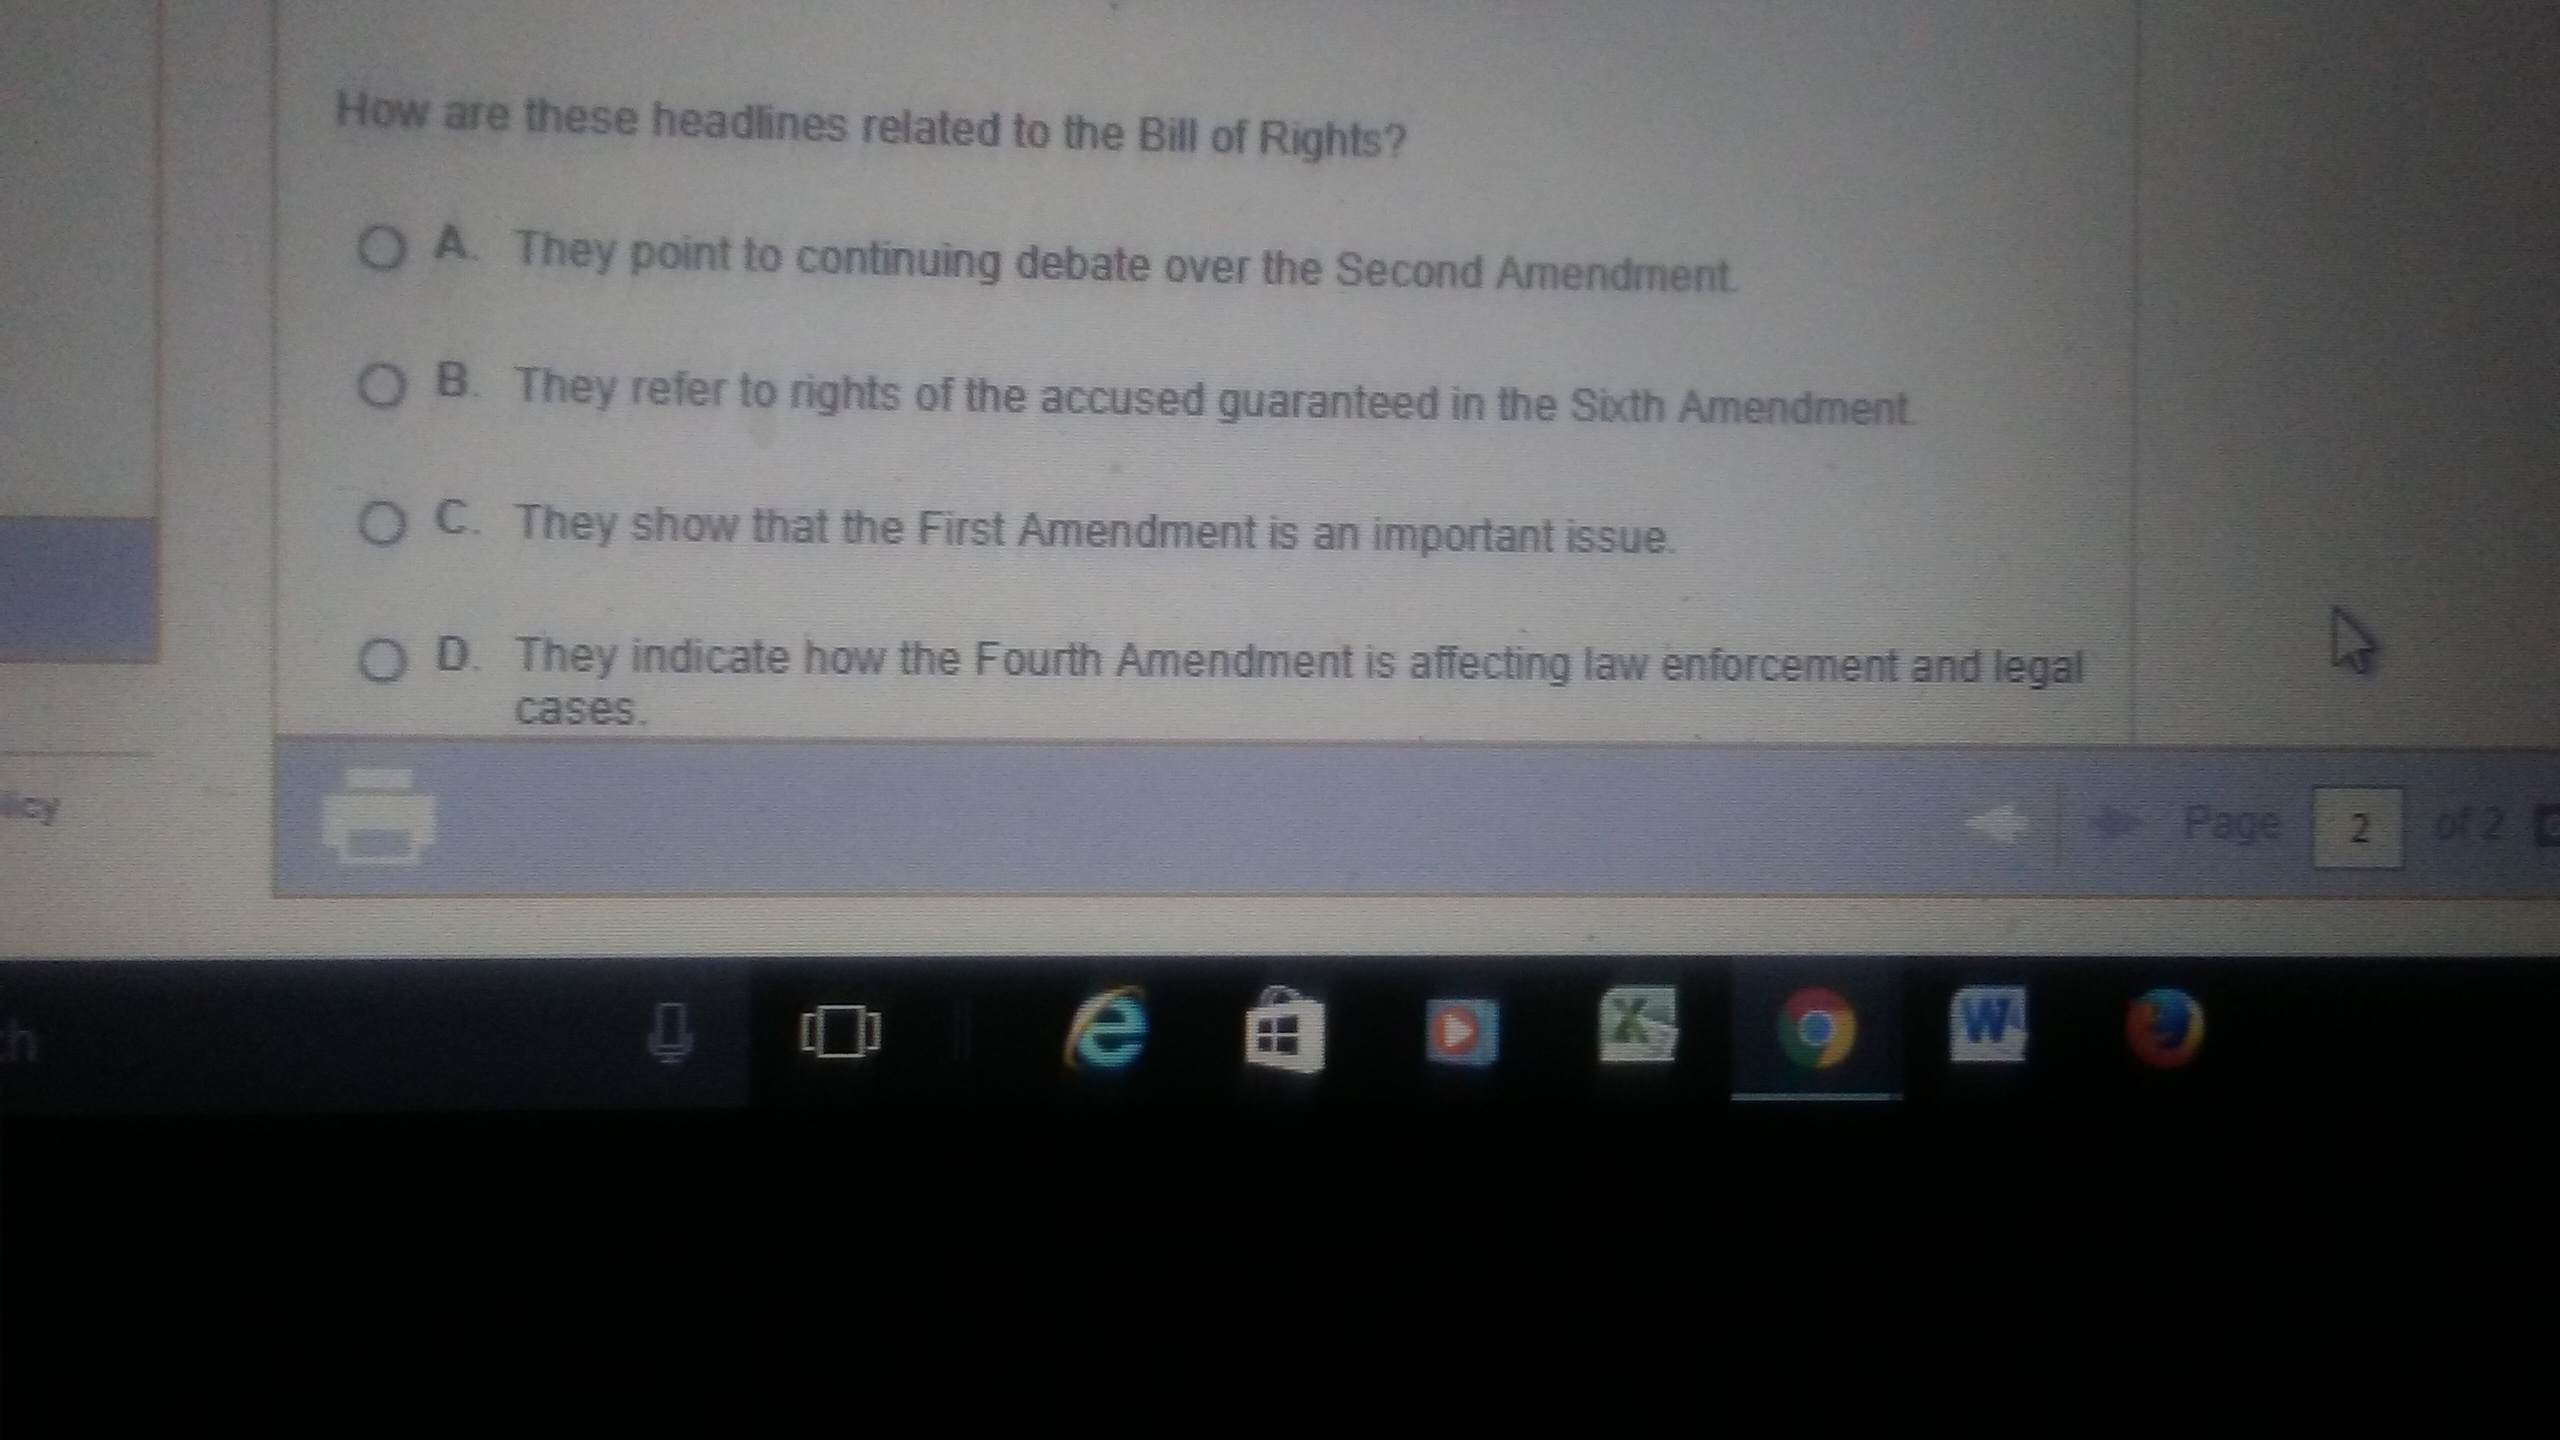 How are these headlines related to bill of rights - Brainly.com